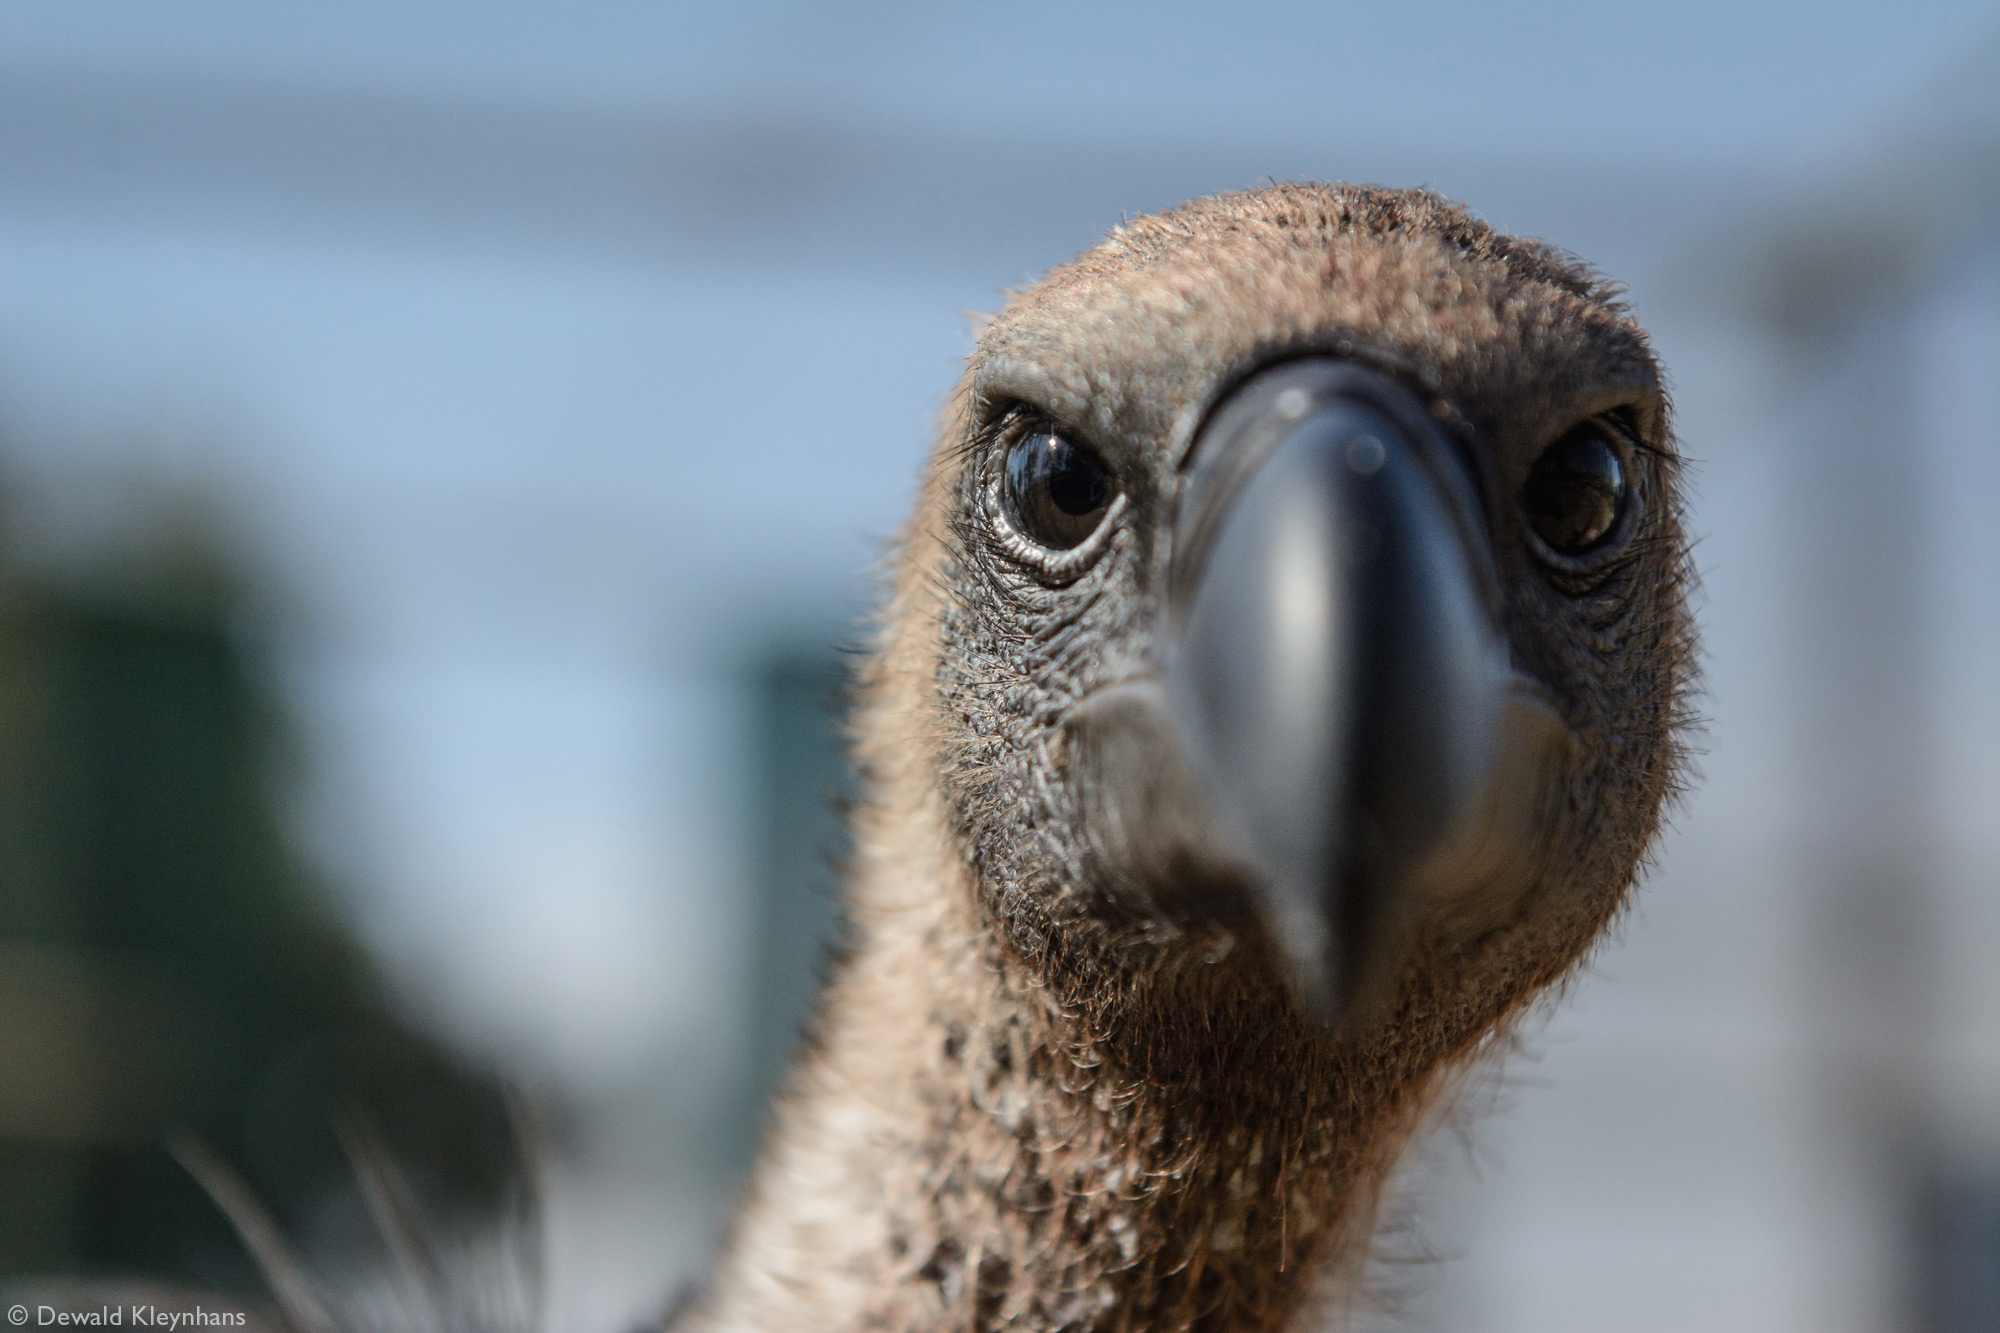 Close up of a vulture's face